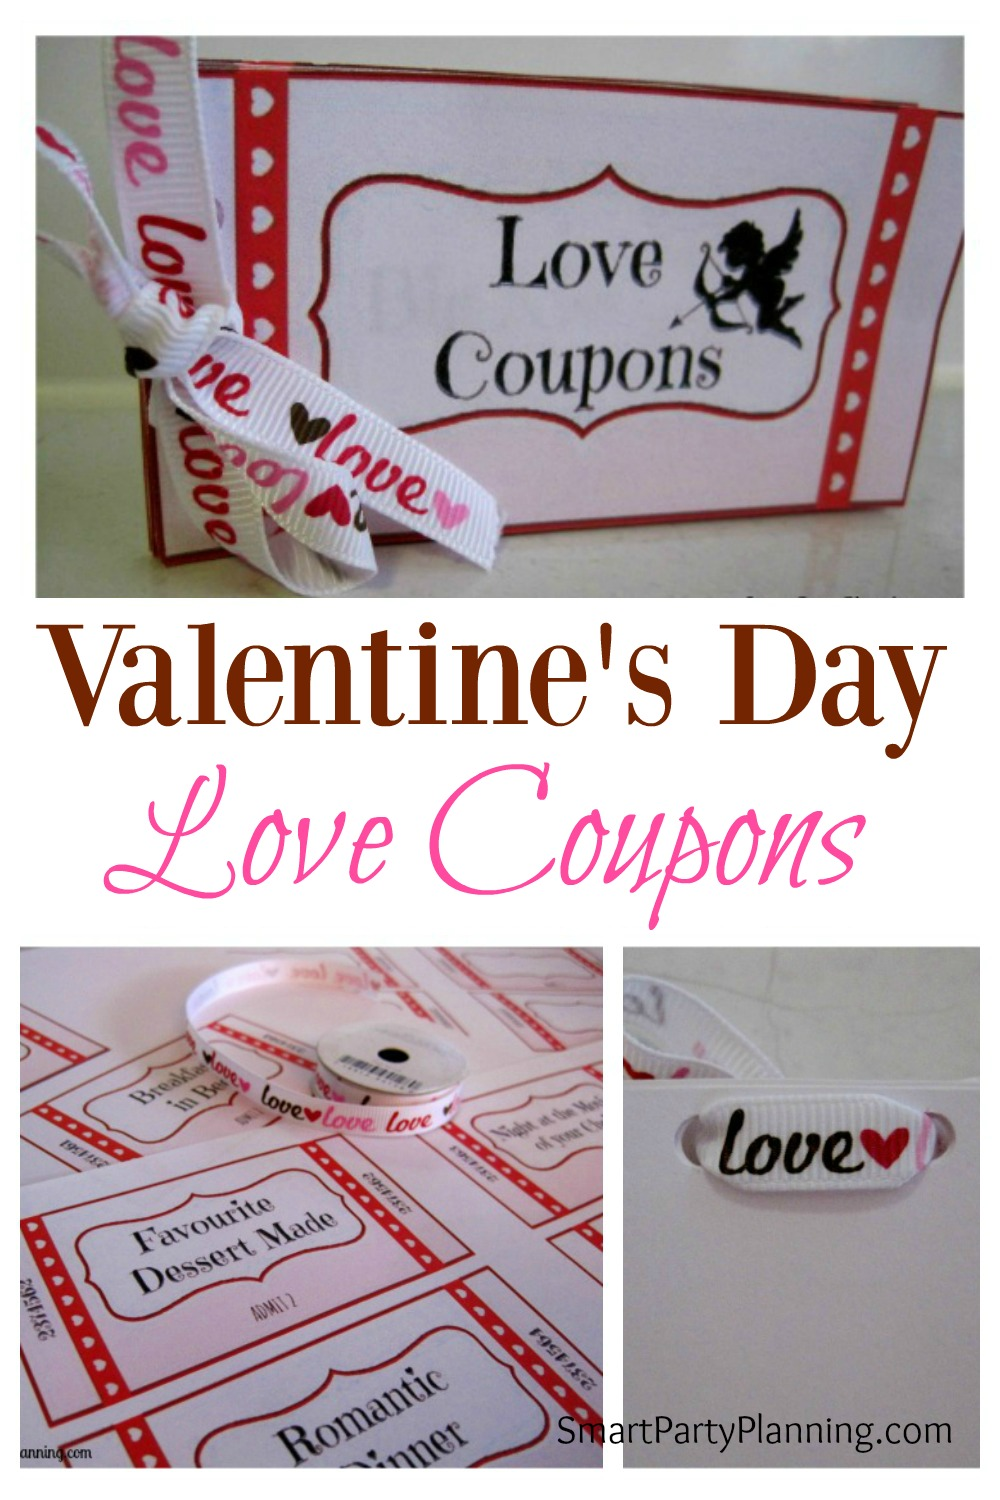 Valentines-Day-Love-Coupons1